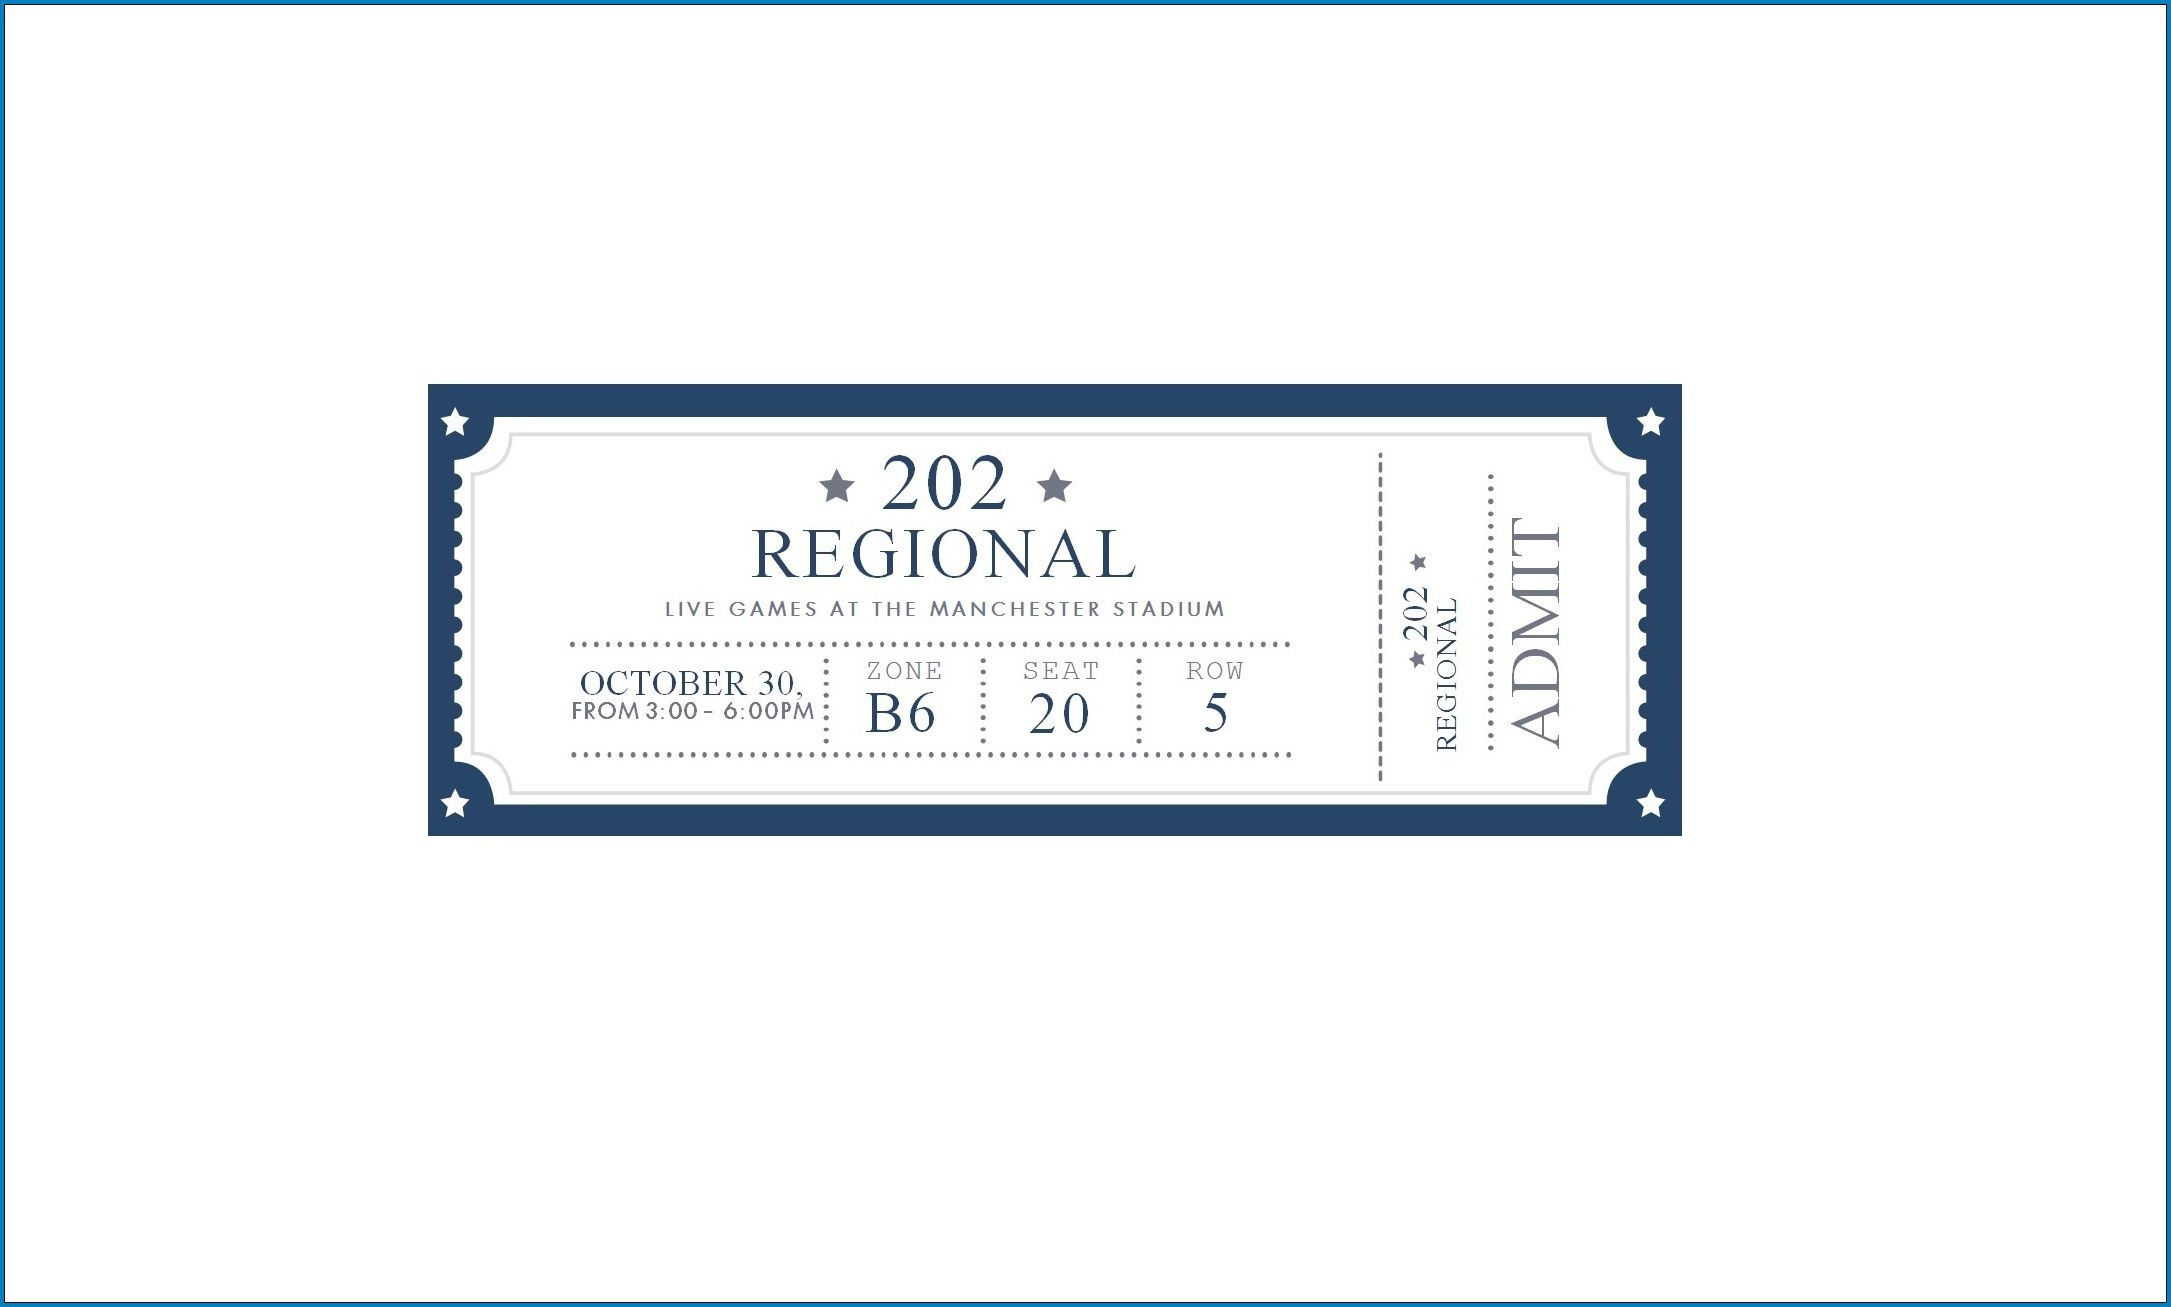 007 Magnificent Free Ticket Template Word Picture  Design Event MicrosoftFull